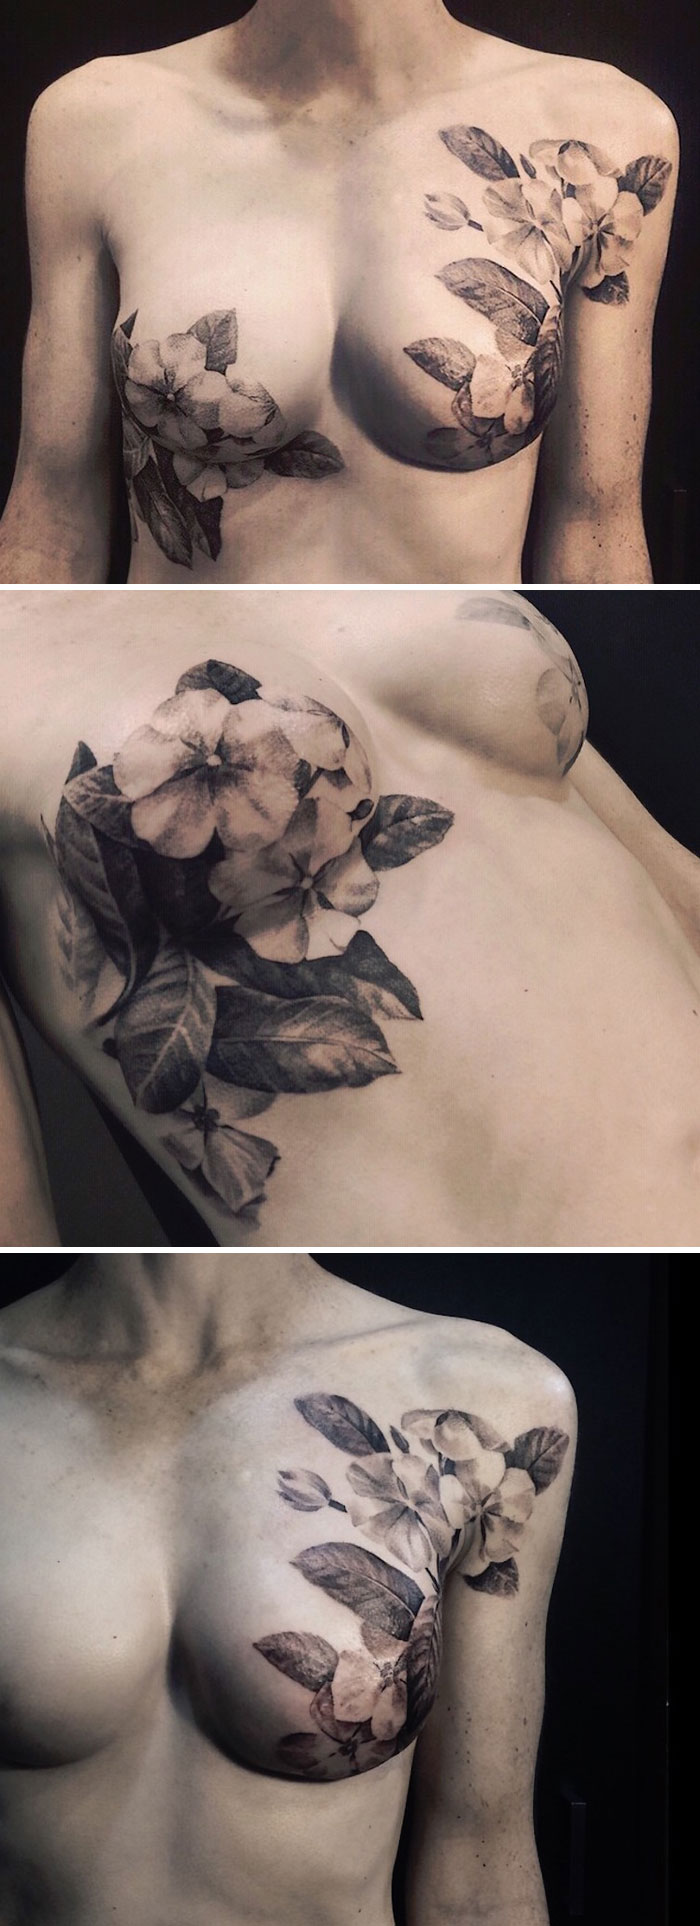 floral-tattoo-artists-12-58e254ca6c03c__700